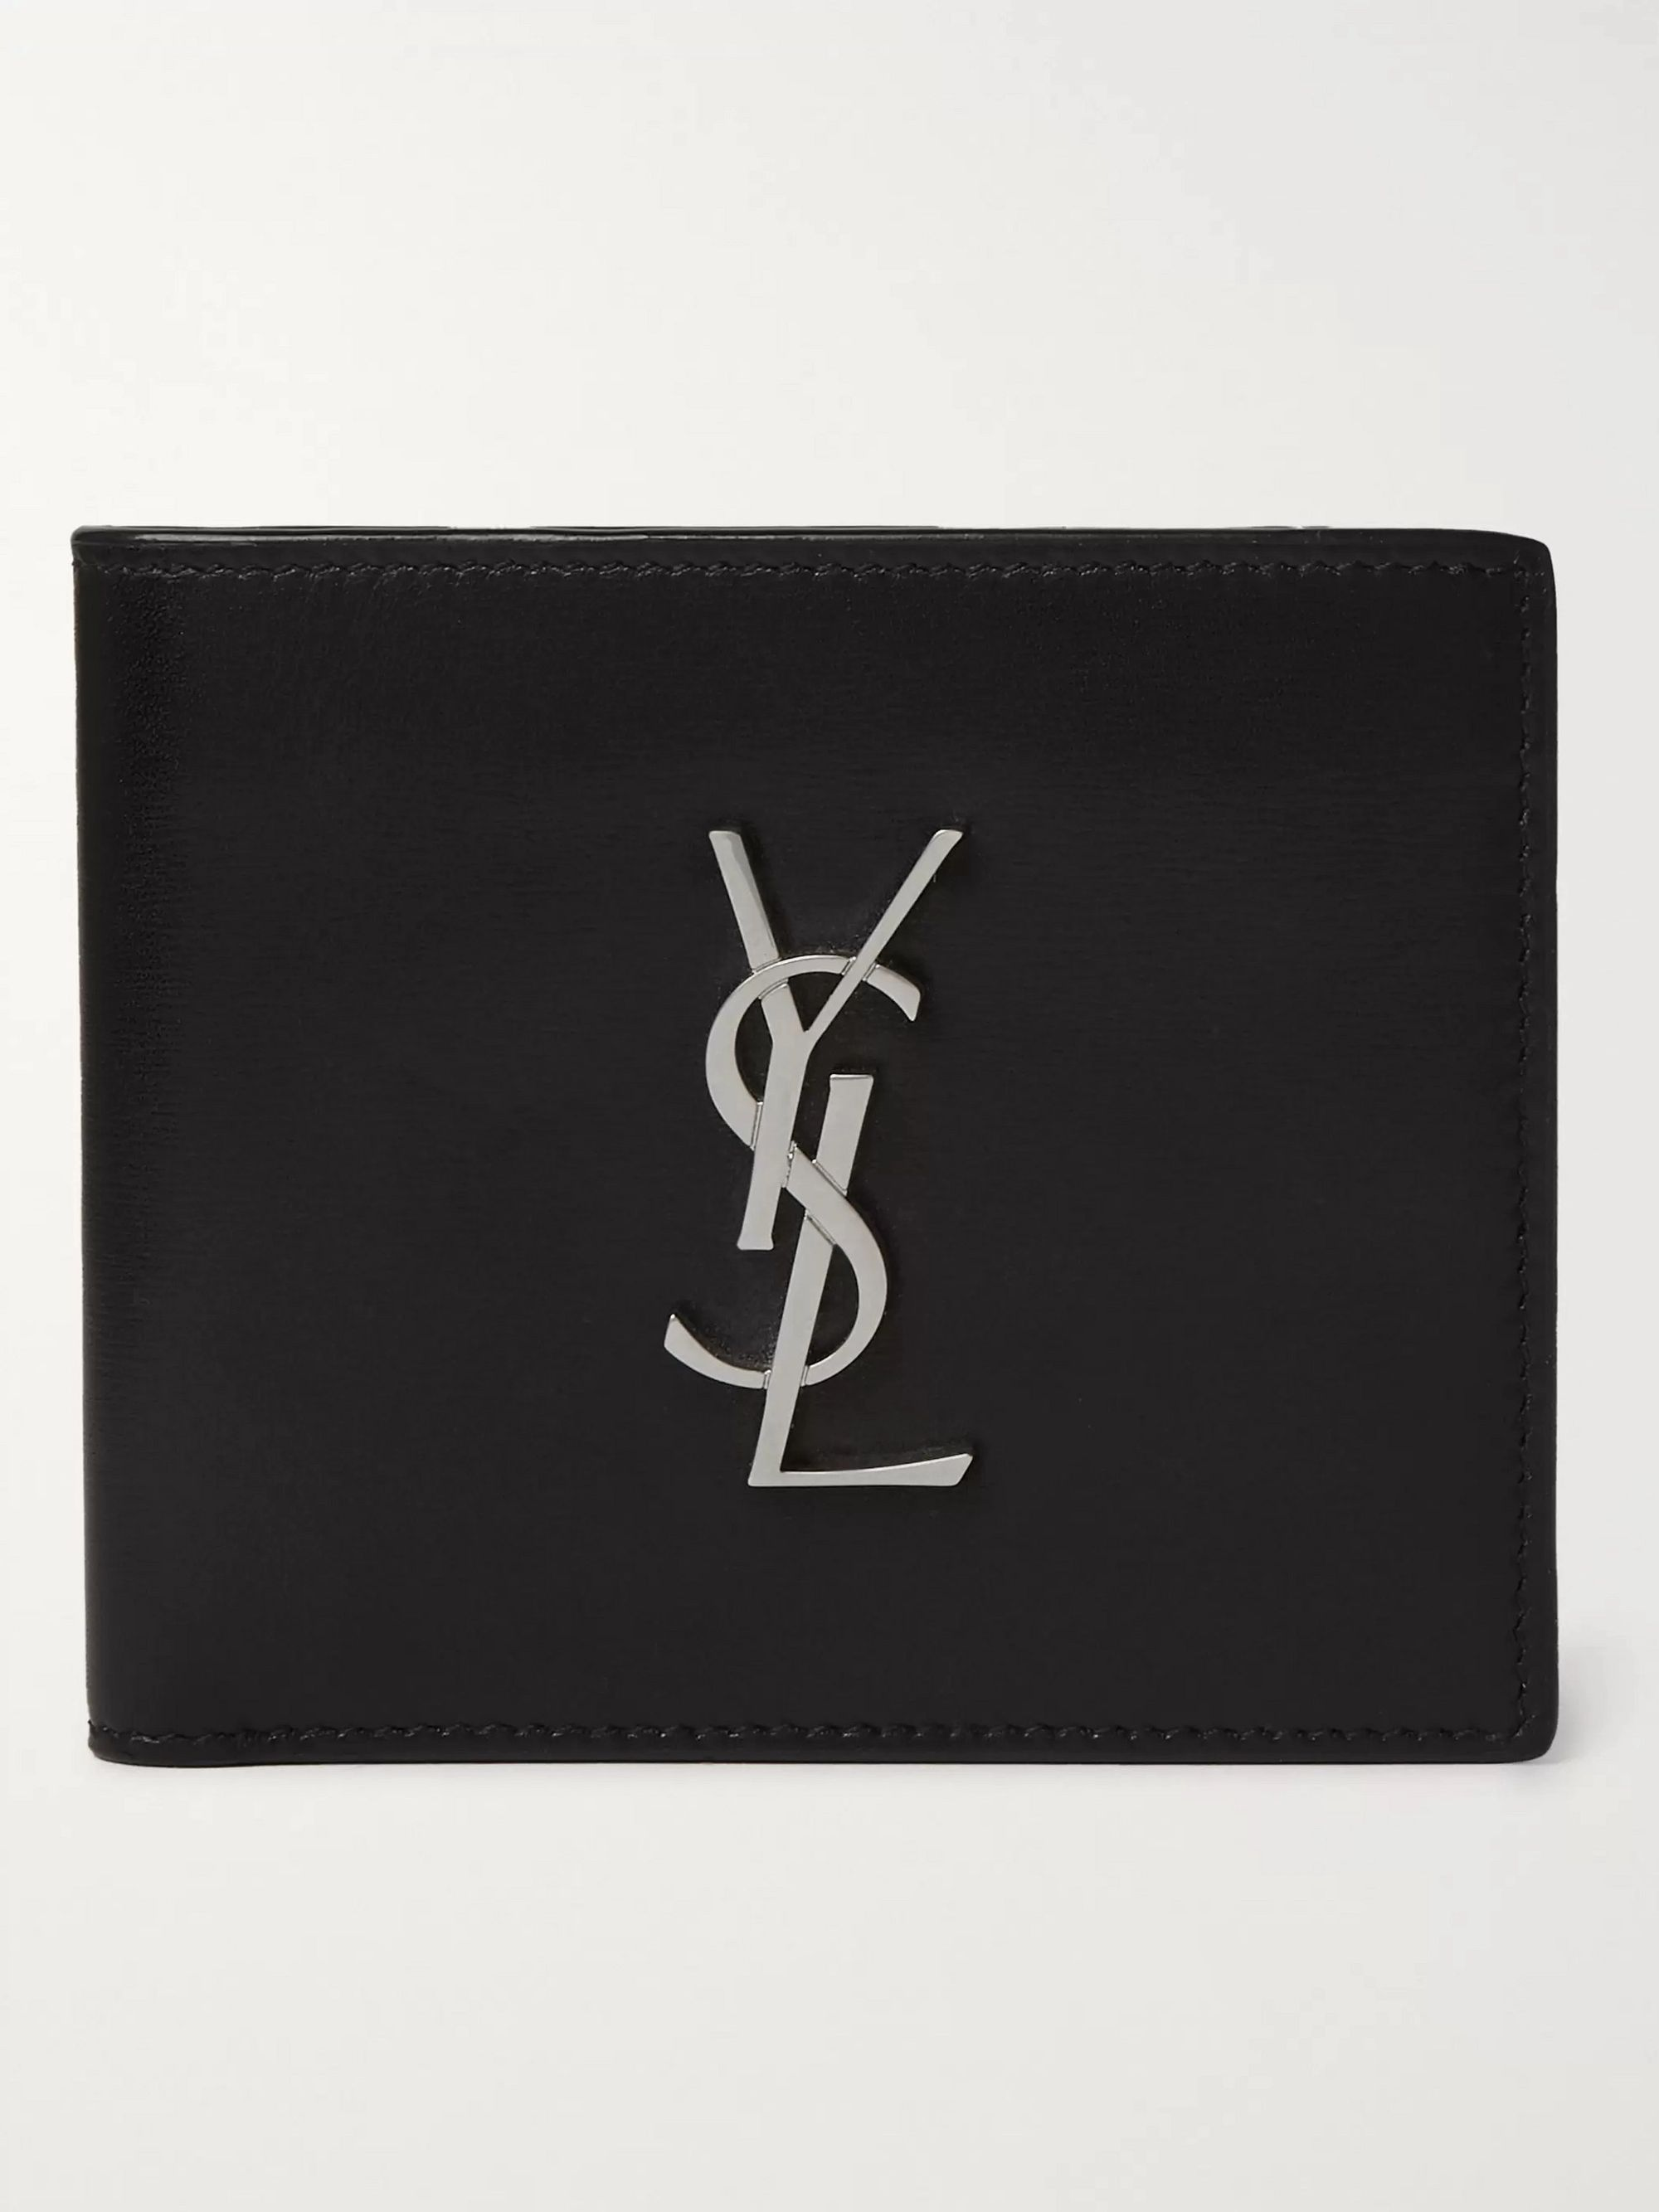 생 로랑 반지갑 Saint Laurent Logo-Appliqued Leather Billfold Wallet,Black